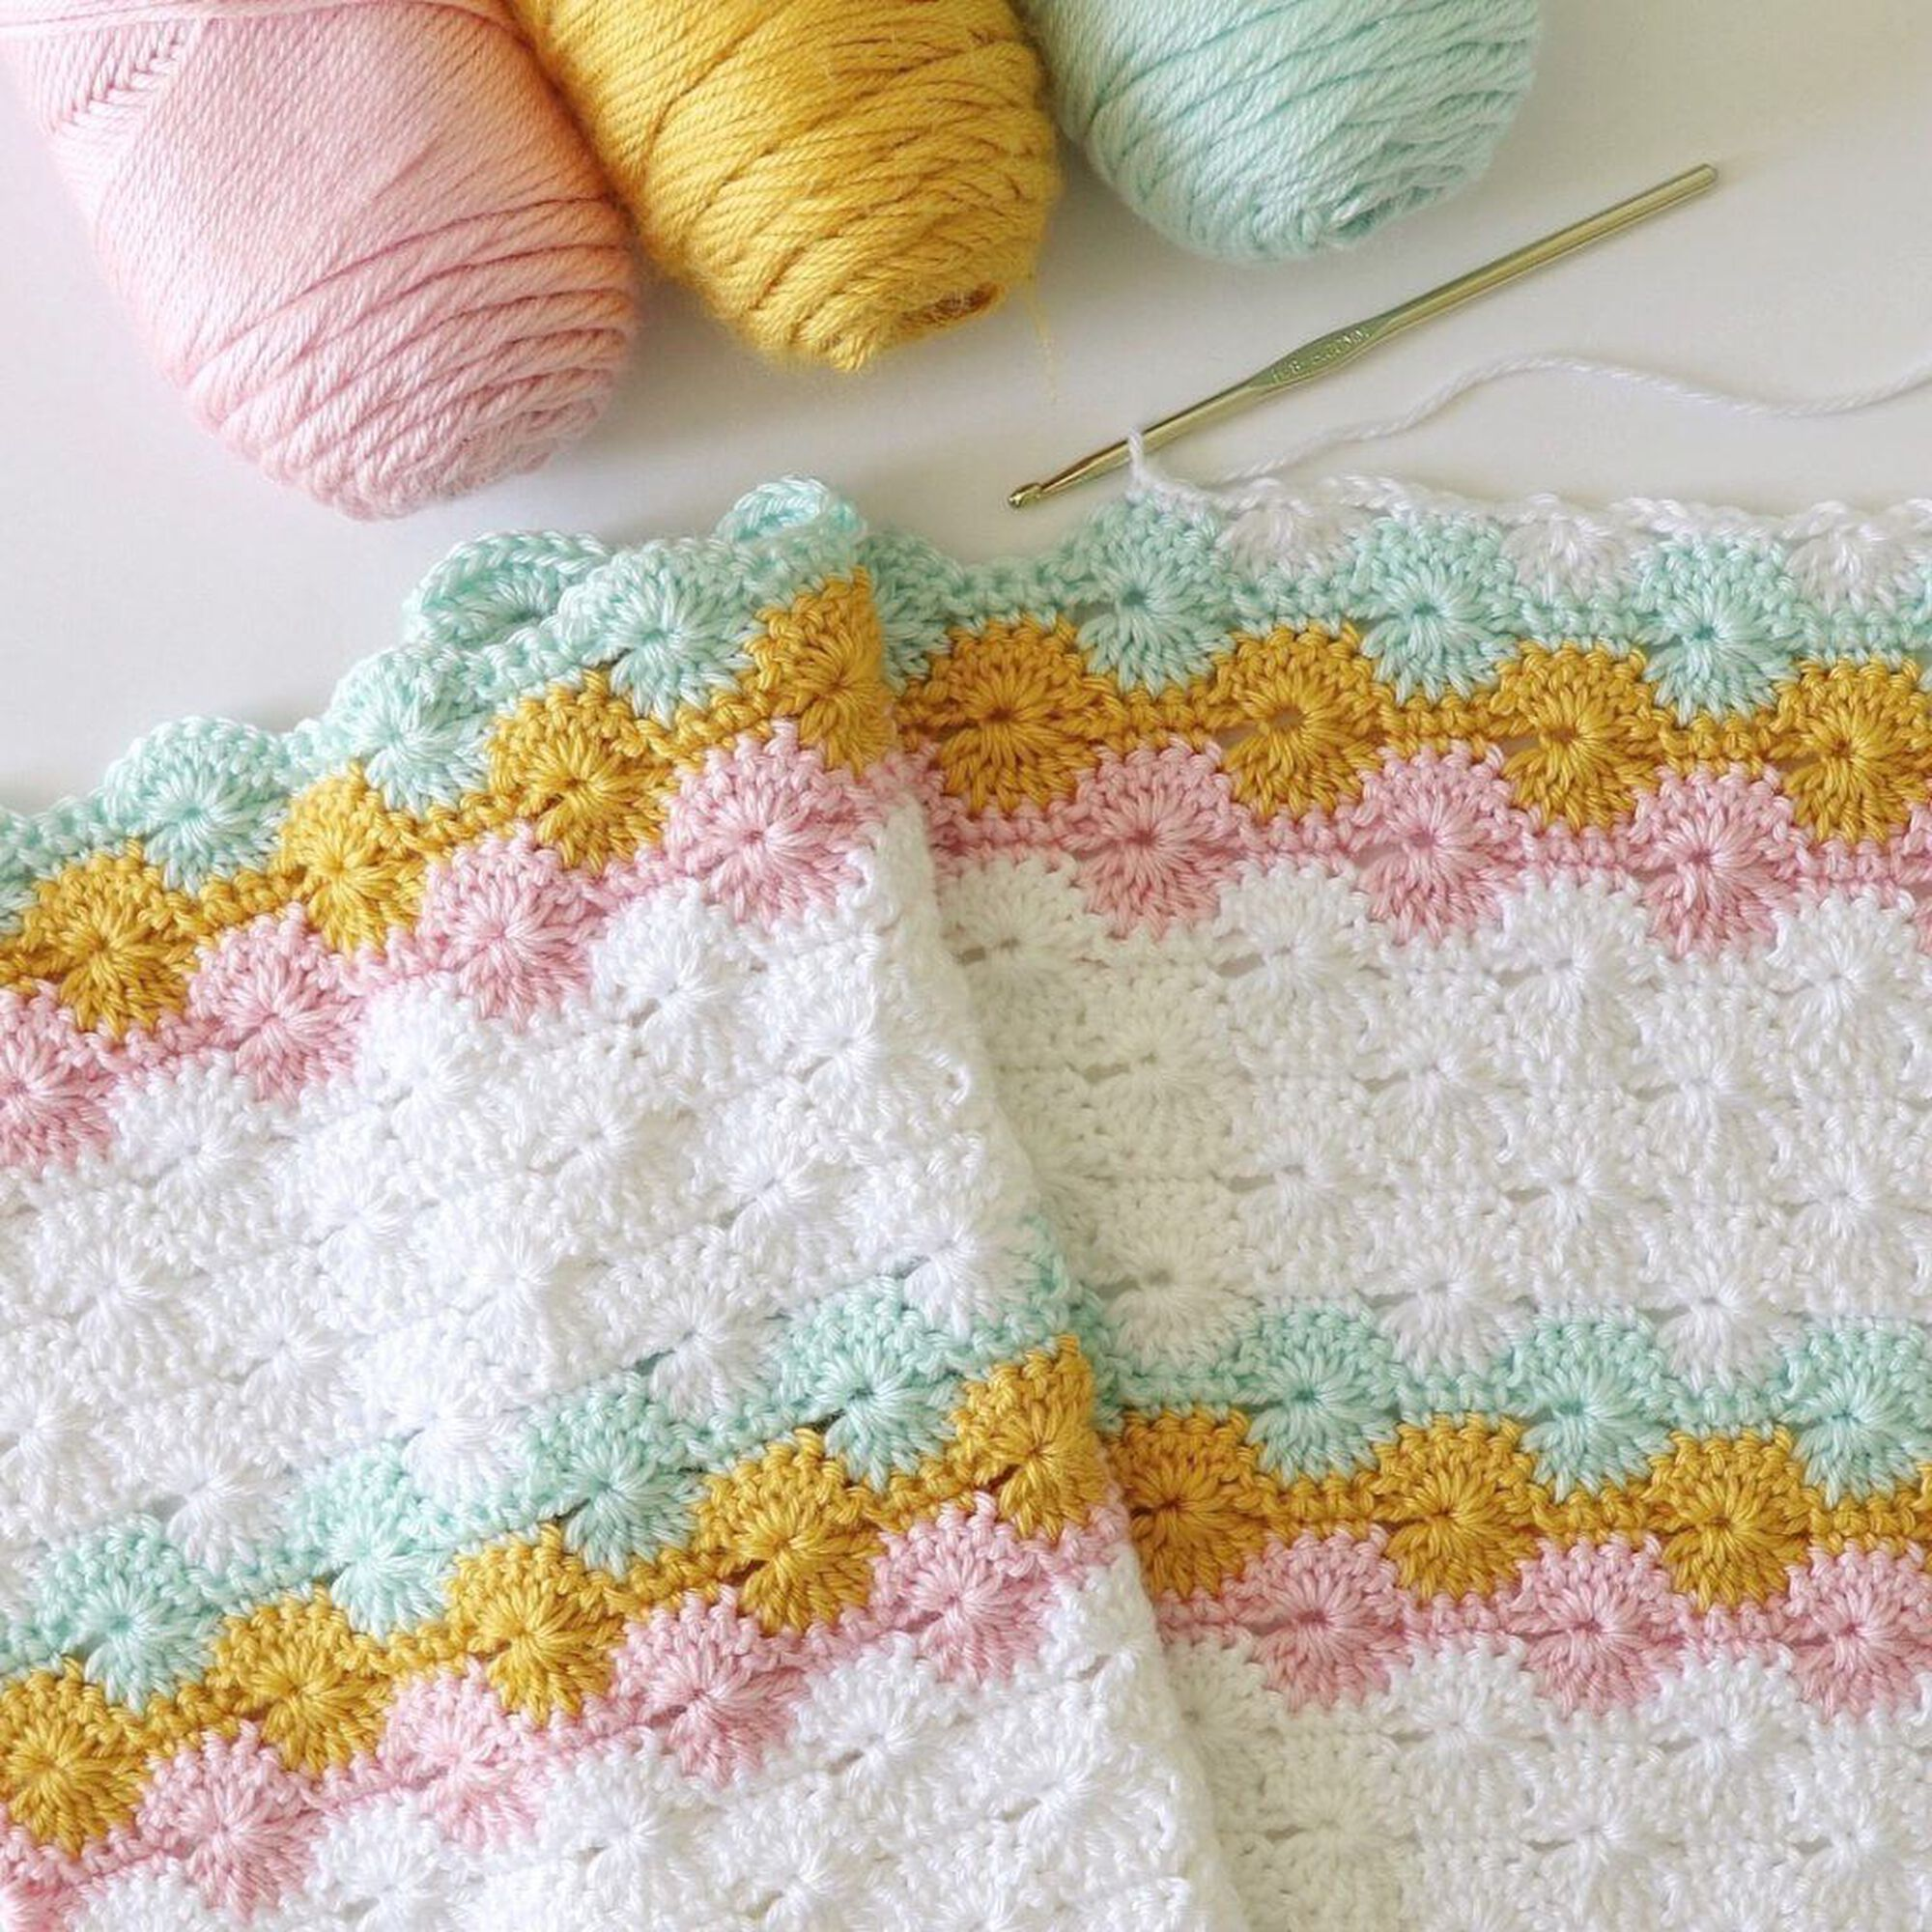 Catherine's Wheel Stitch Blanket Crochet Pattern: Step by Step Written Instructions And Video Tutorial